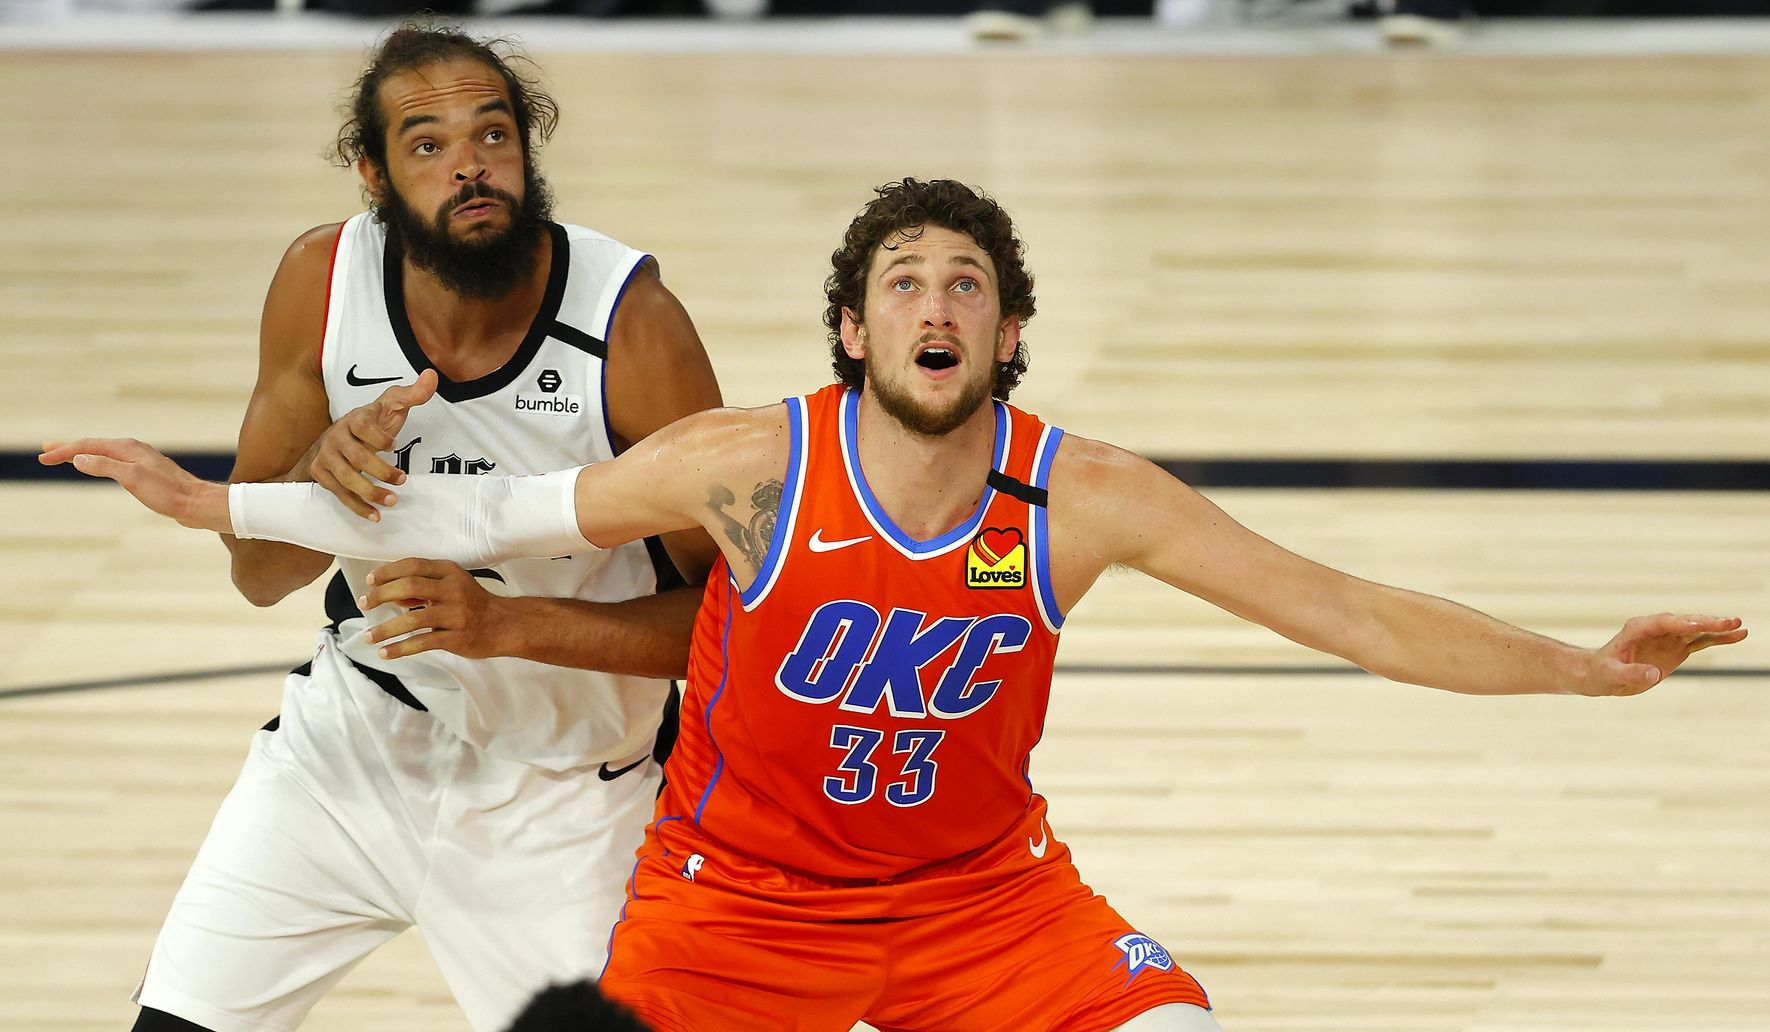 Thunder_clippers_basketball_38633_c0-179-4513-2810_s1770x1032